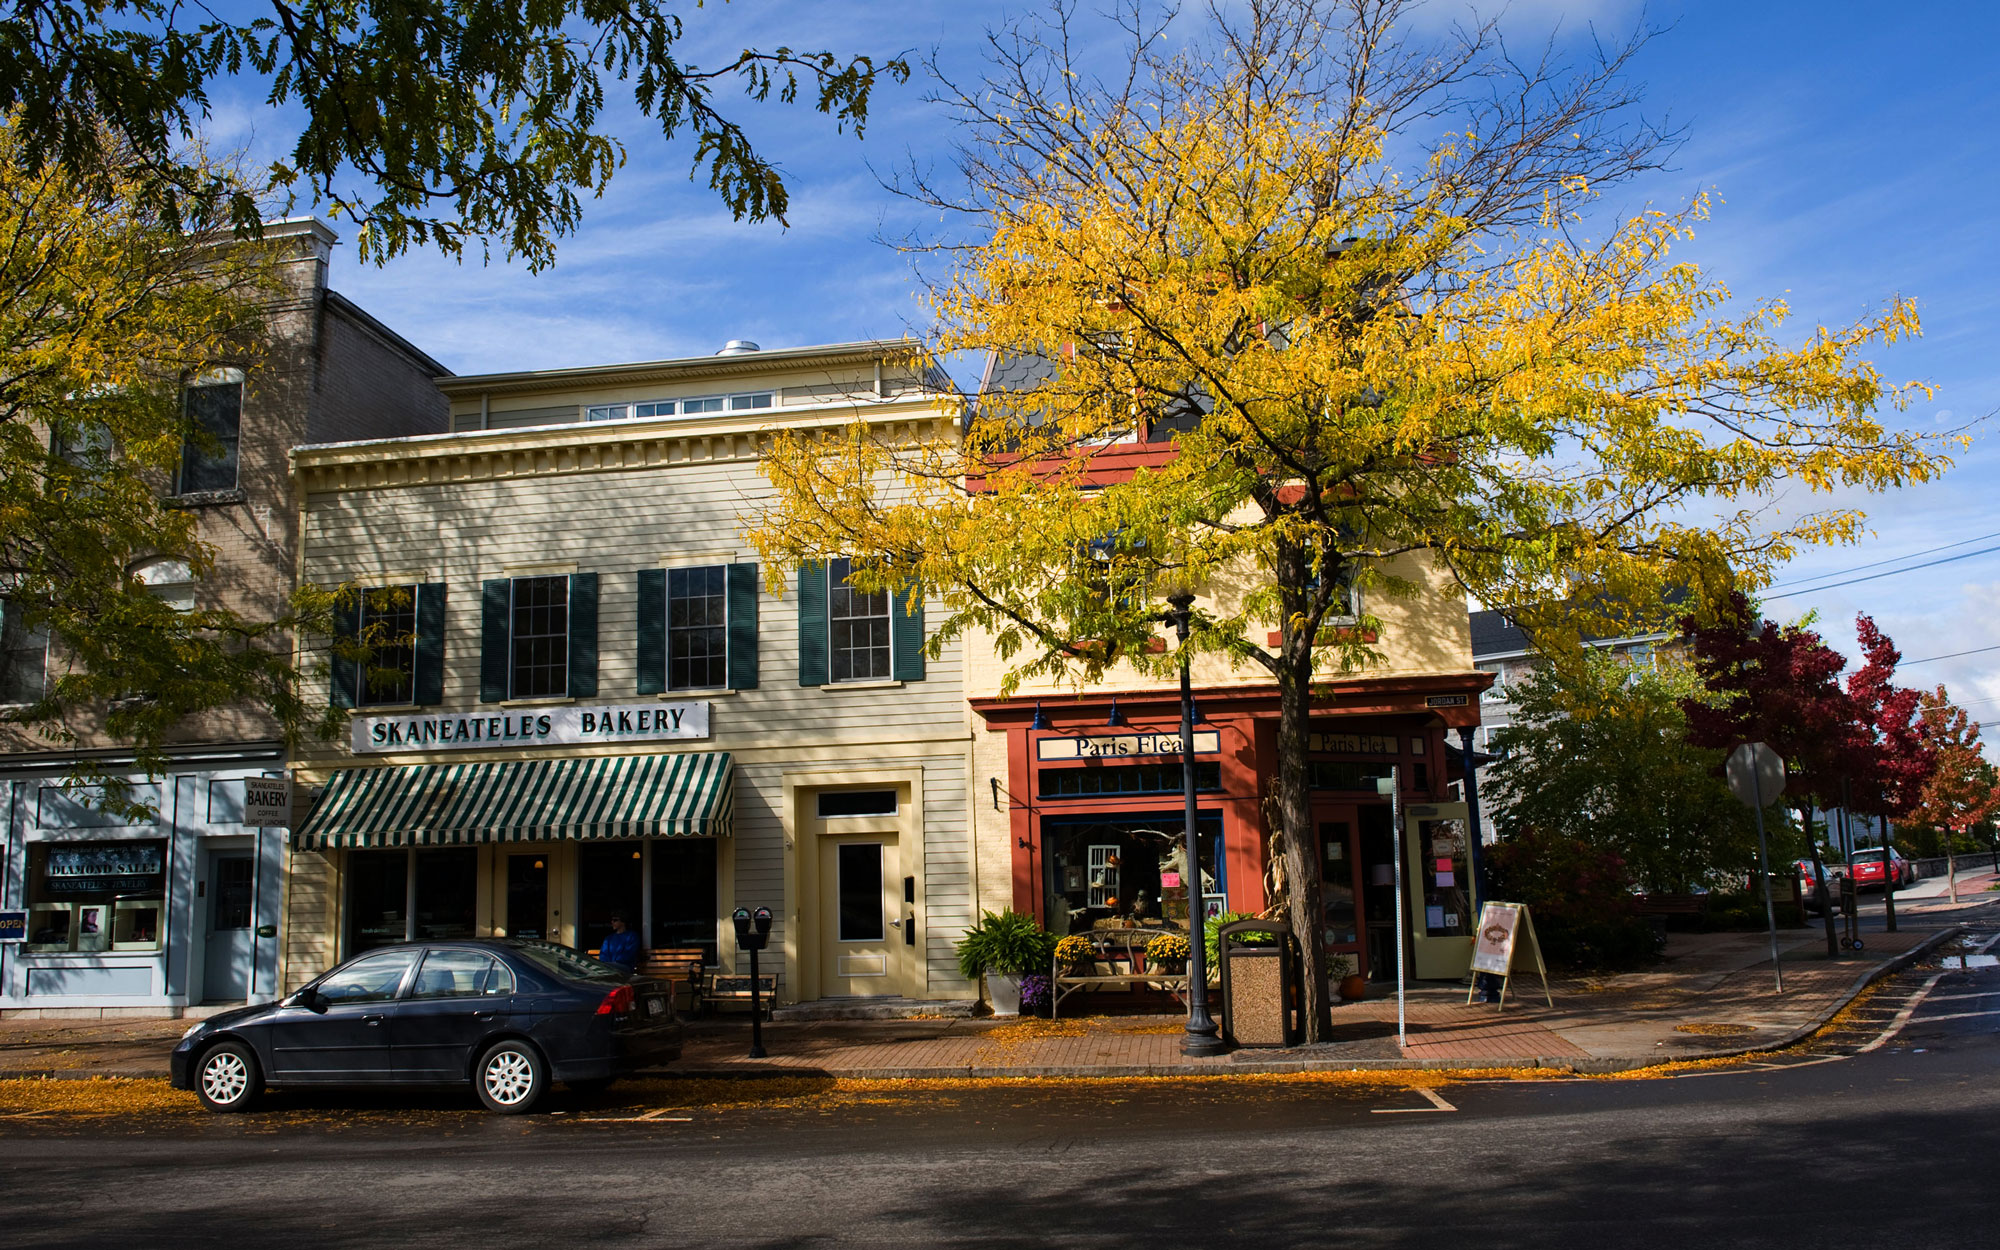 America's Best Towns for Halloween: Skaneateles